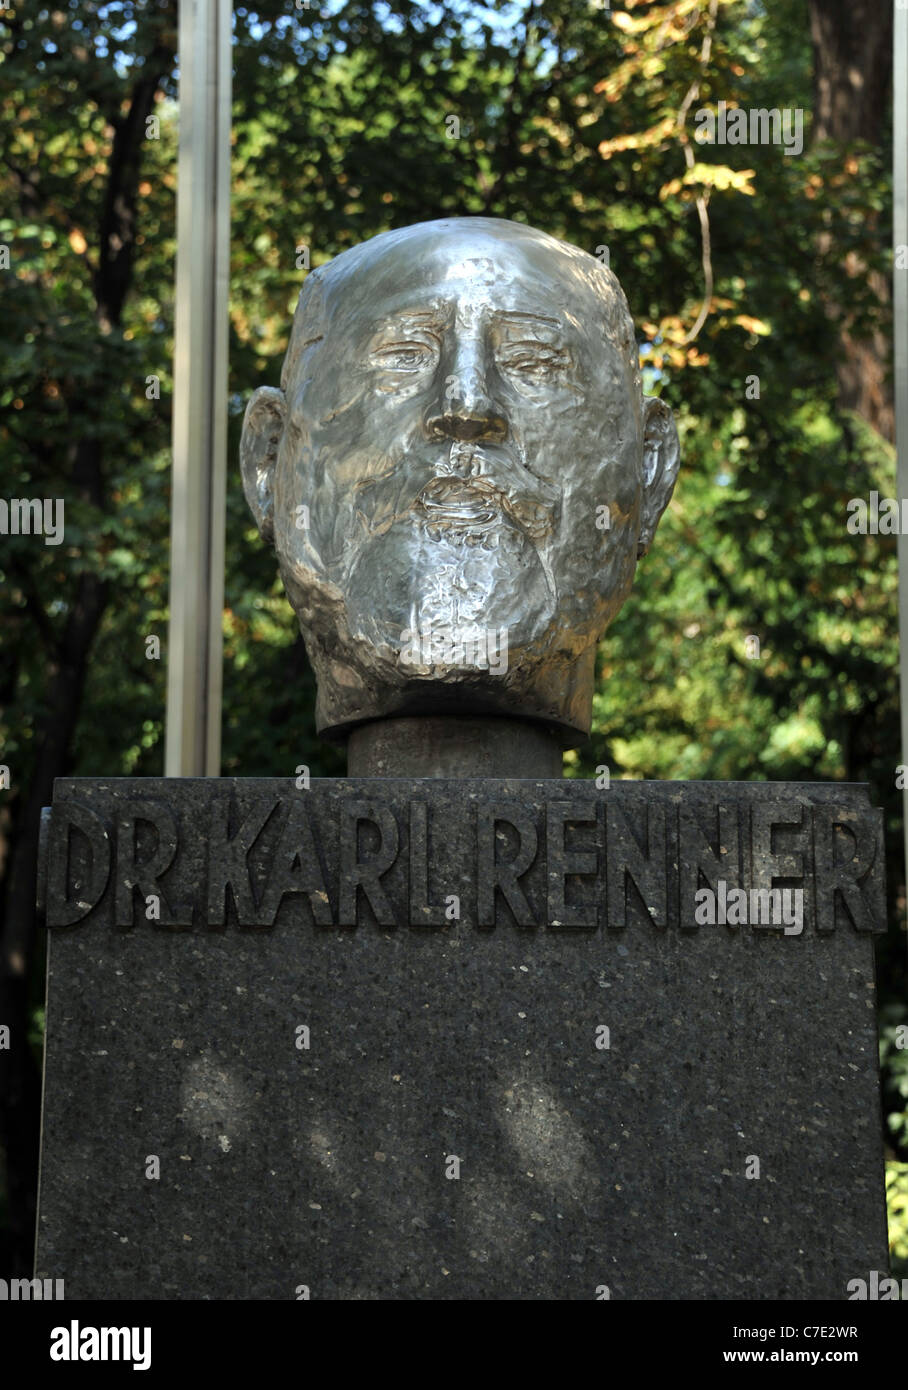 Dr Karl Renner statue. He is called the Father of the Republic because he headed the first government in republican - Stock Image